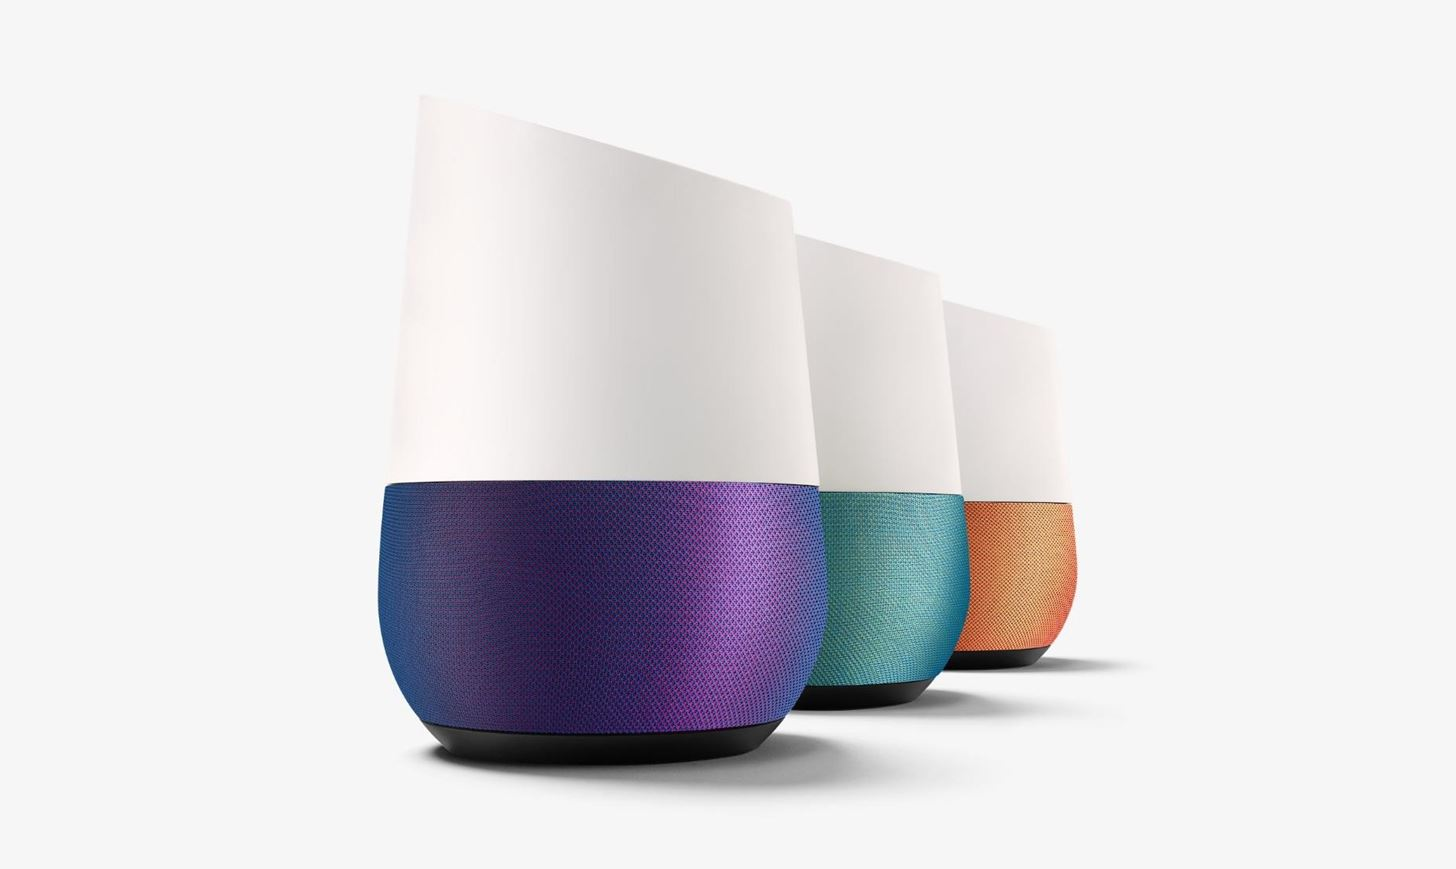 Google Home Will Soon Be Able to Support Multiple Users